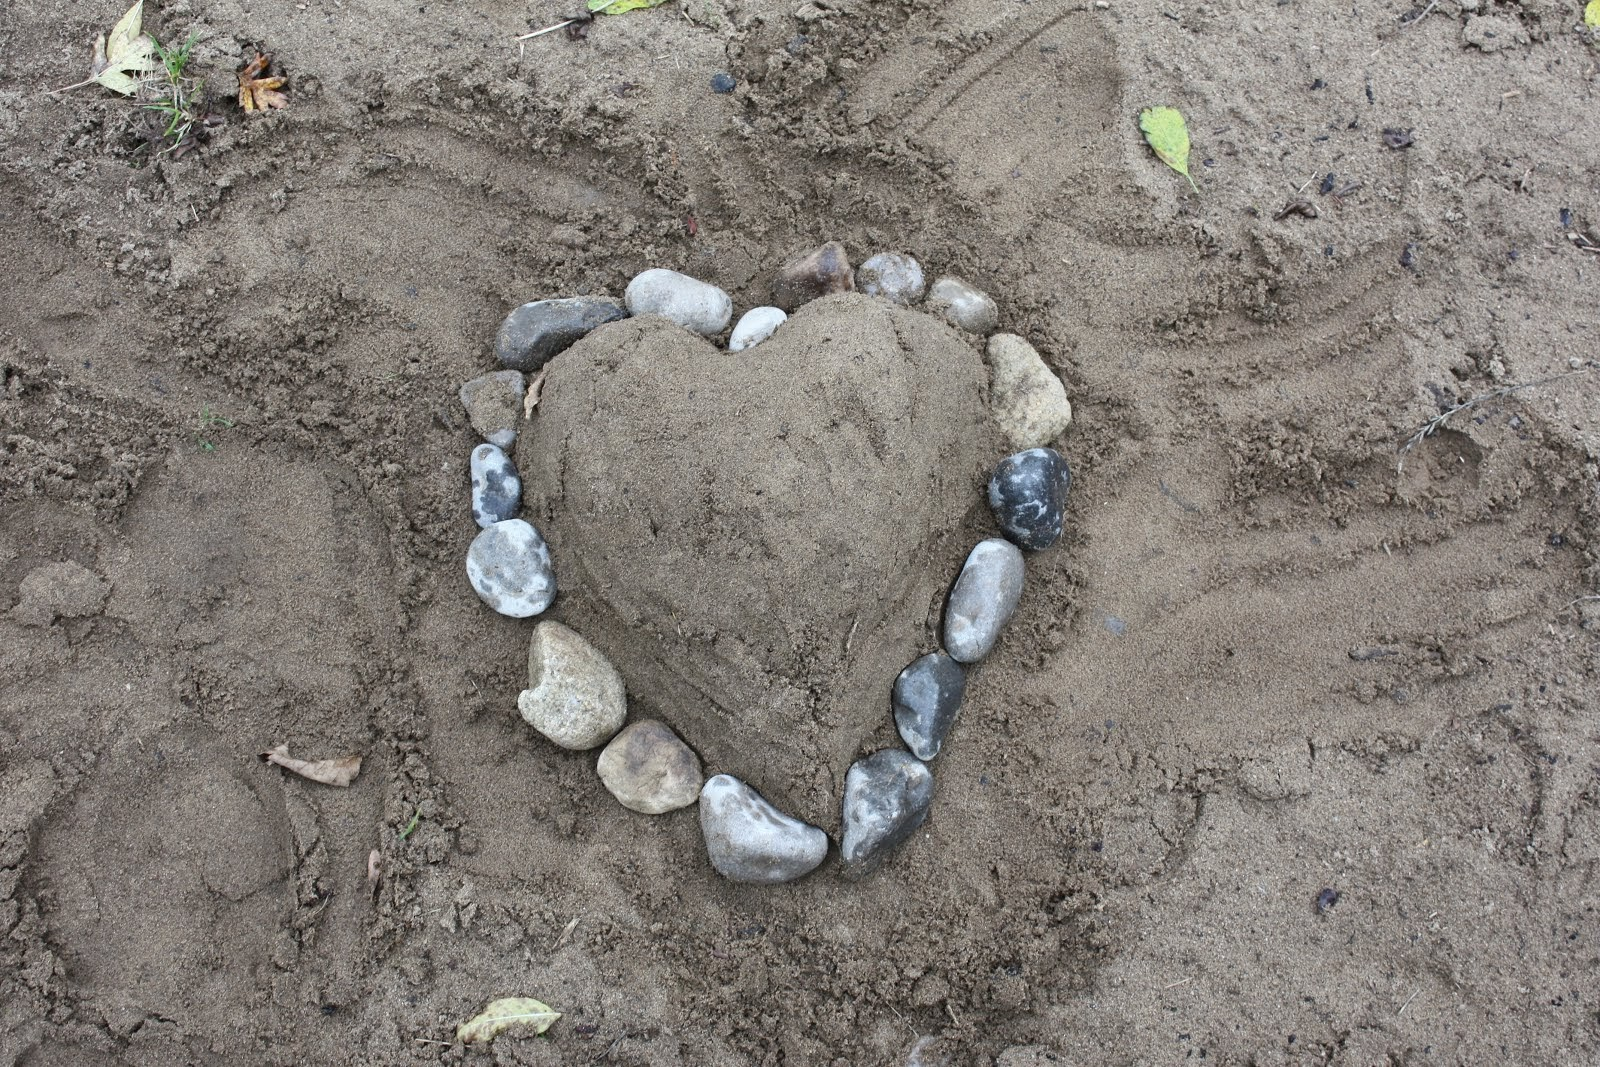 Making hearts in the sand...